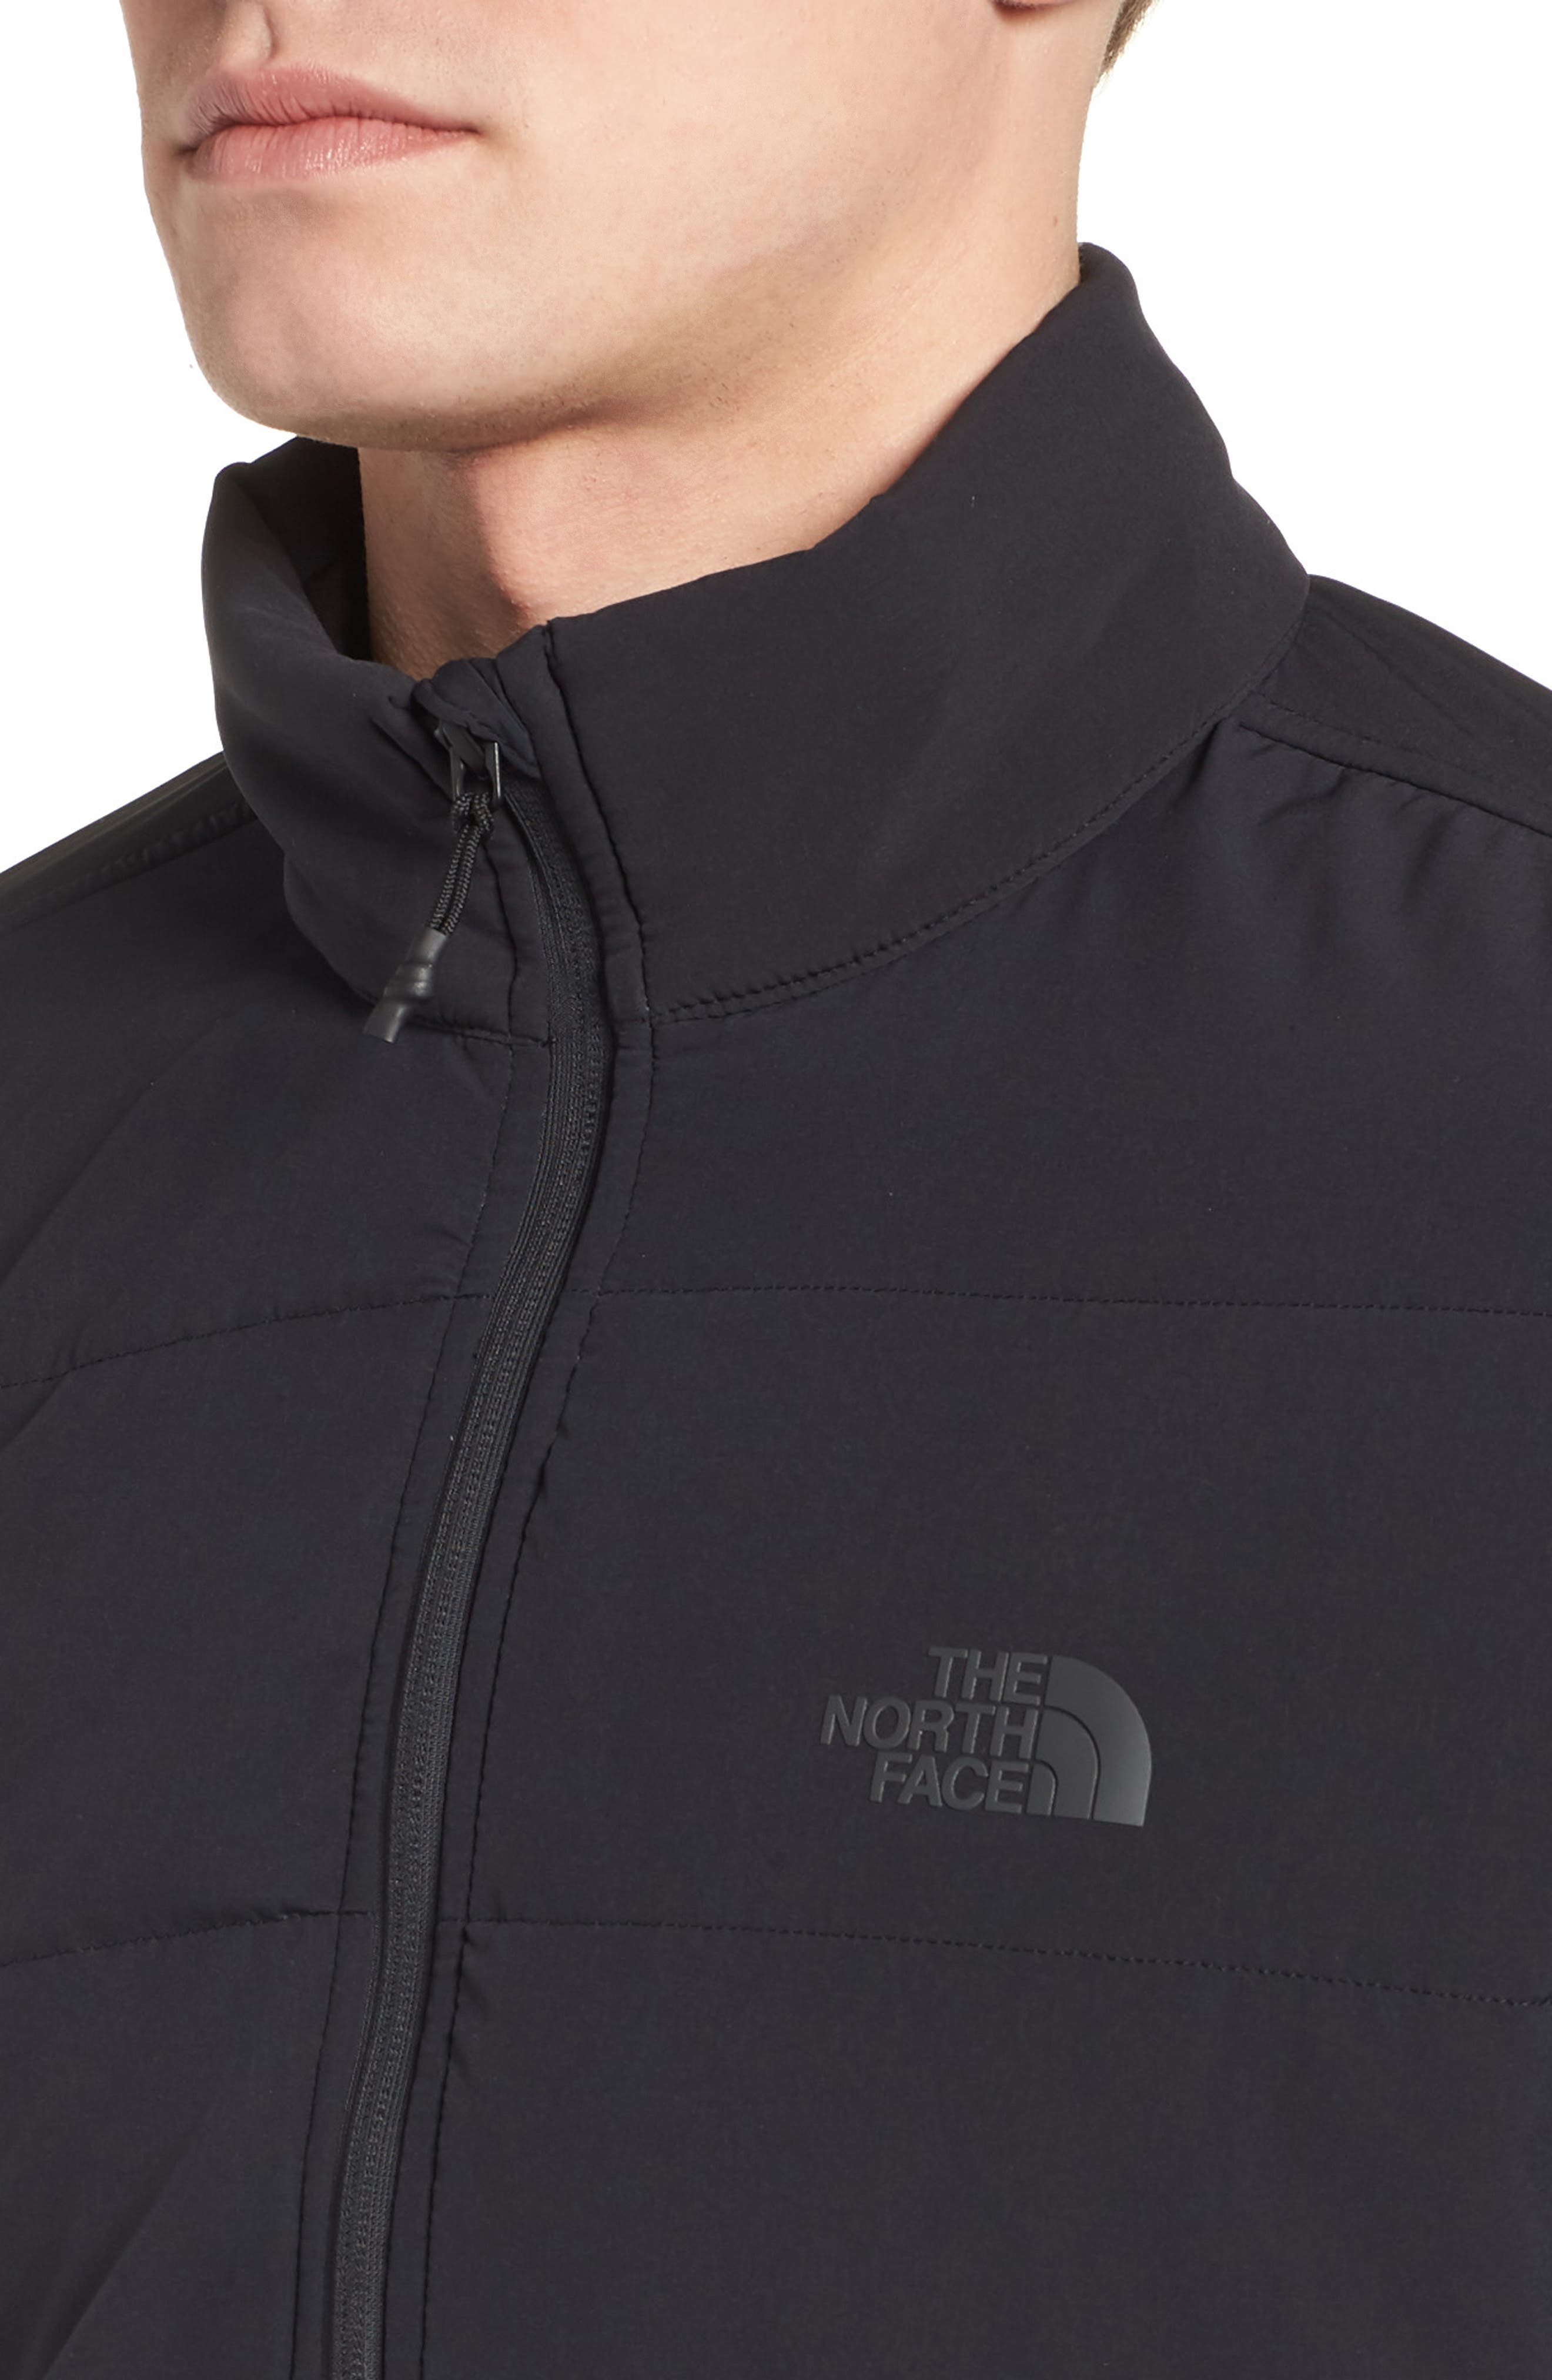 THE NORTH FACE,                             Mountain Quarter Zip Pullover,                             Alternate thumbnail 4, color,                             001